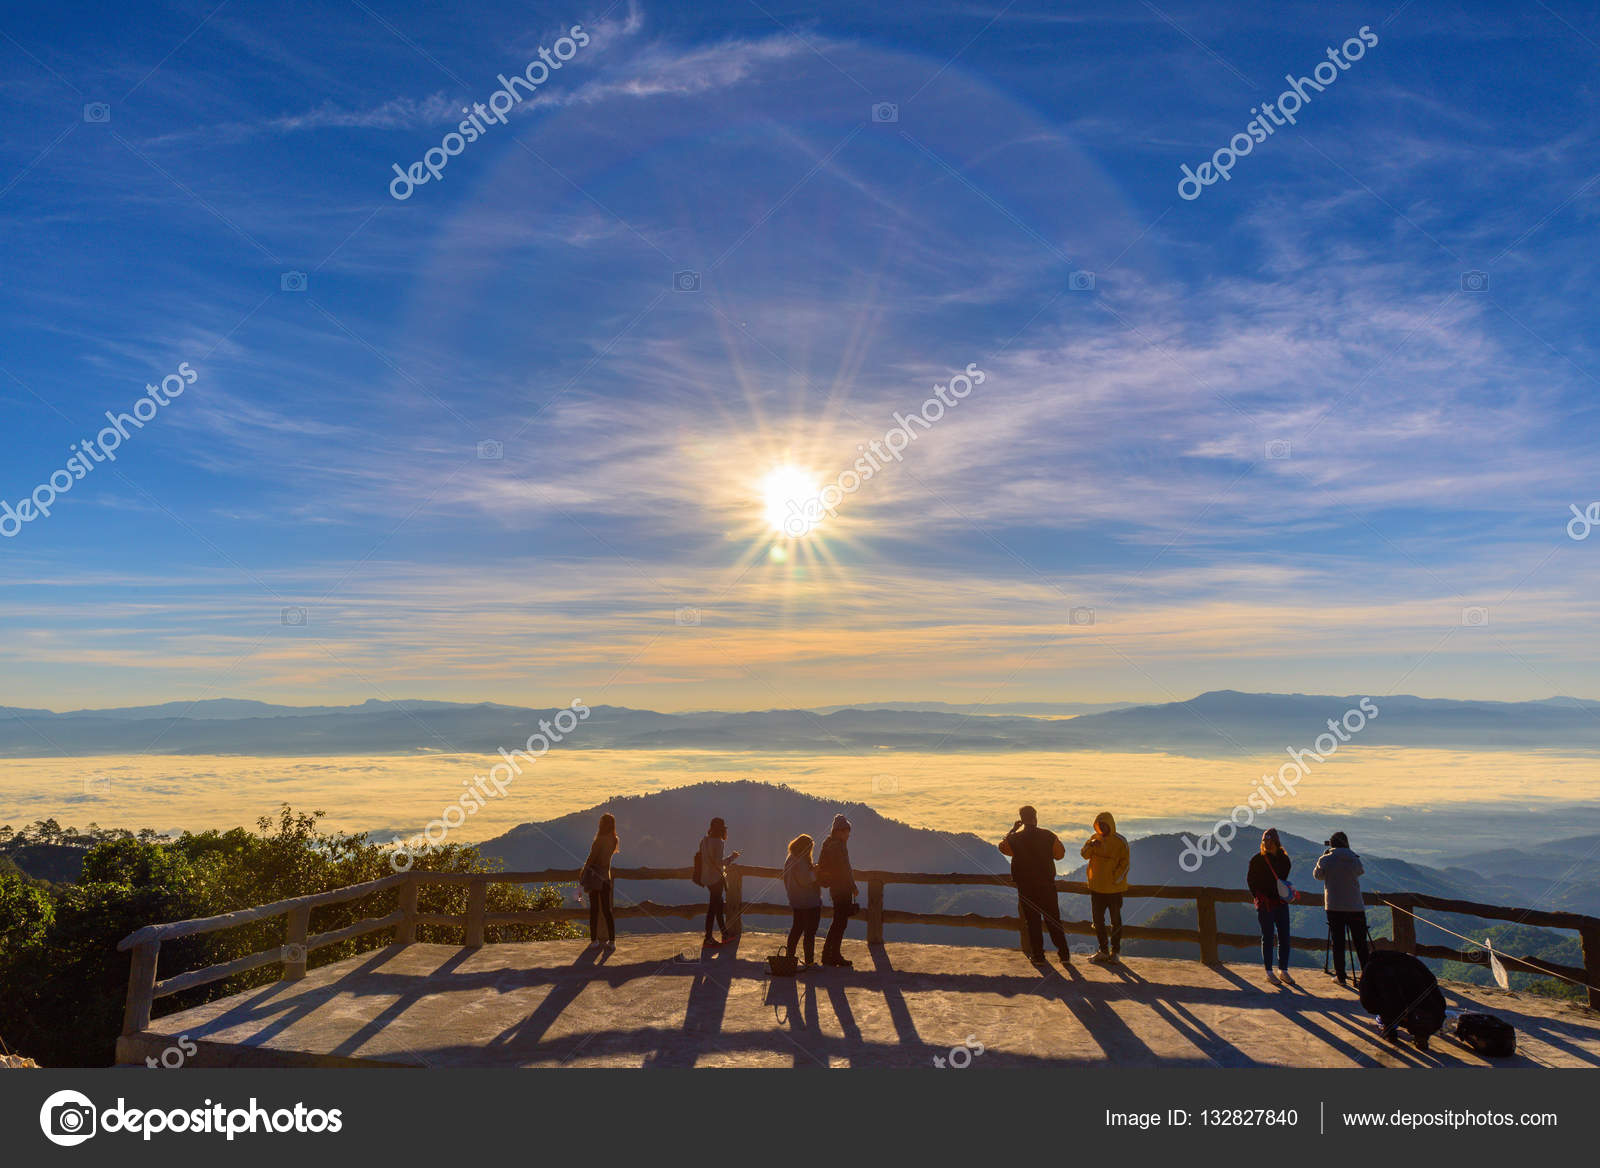 Rise Of The Sun People